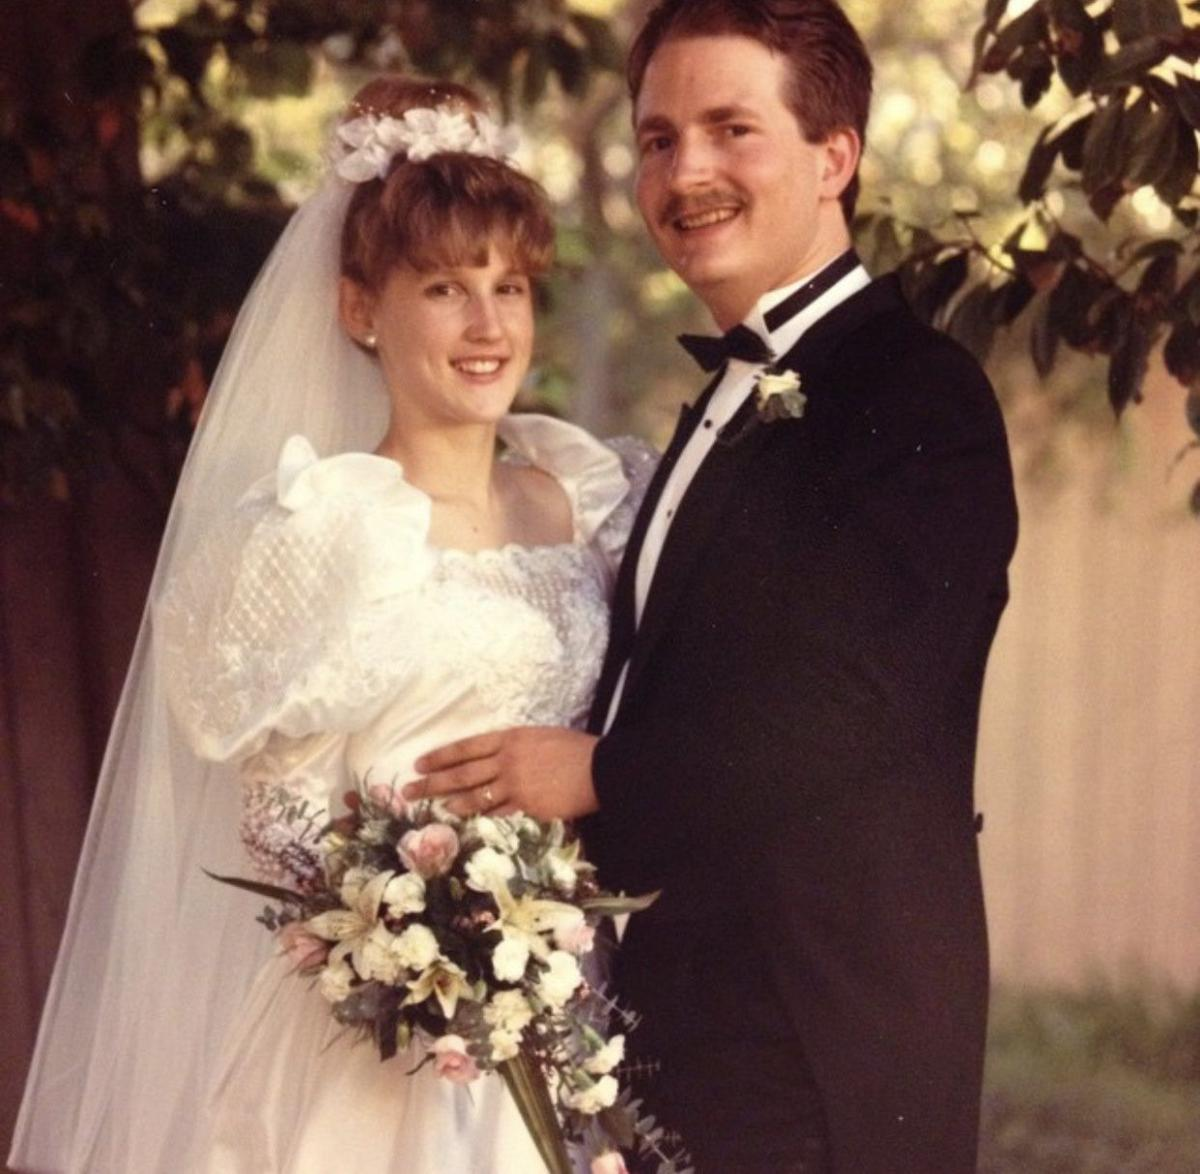 A photo of the 1989 wedding of Jennifer and her new husband Donnie Huffman.